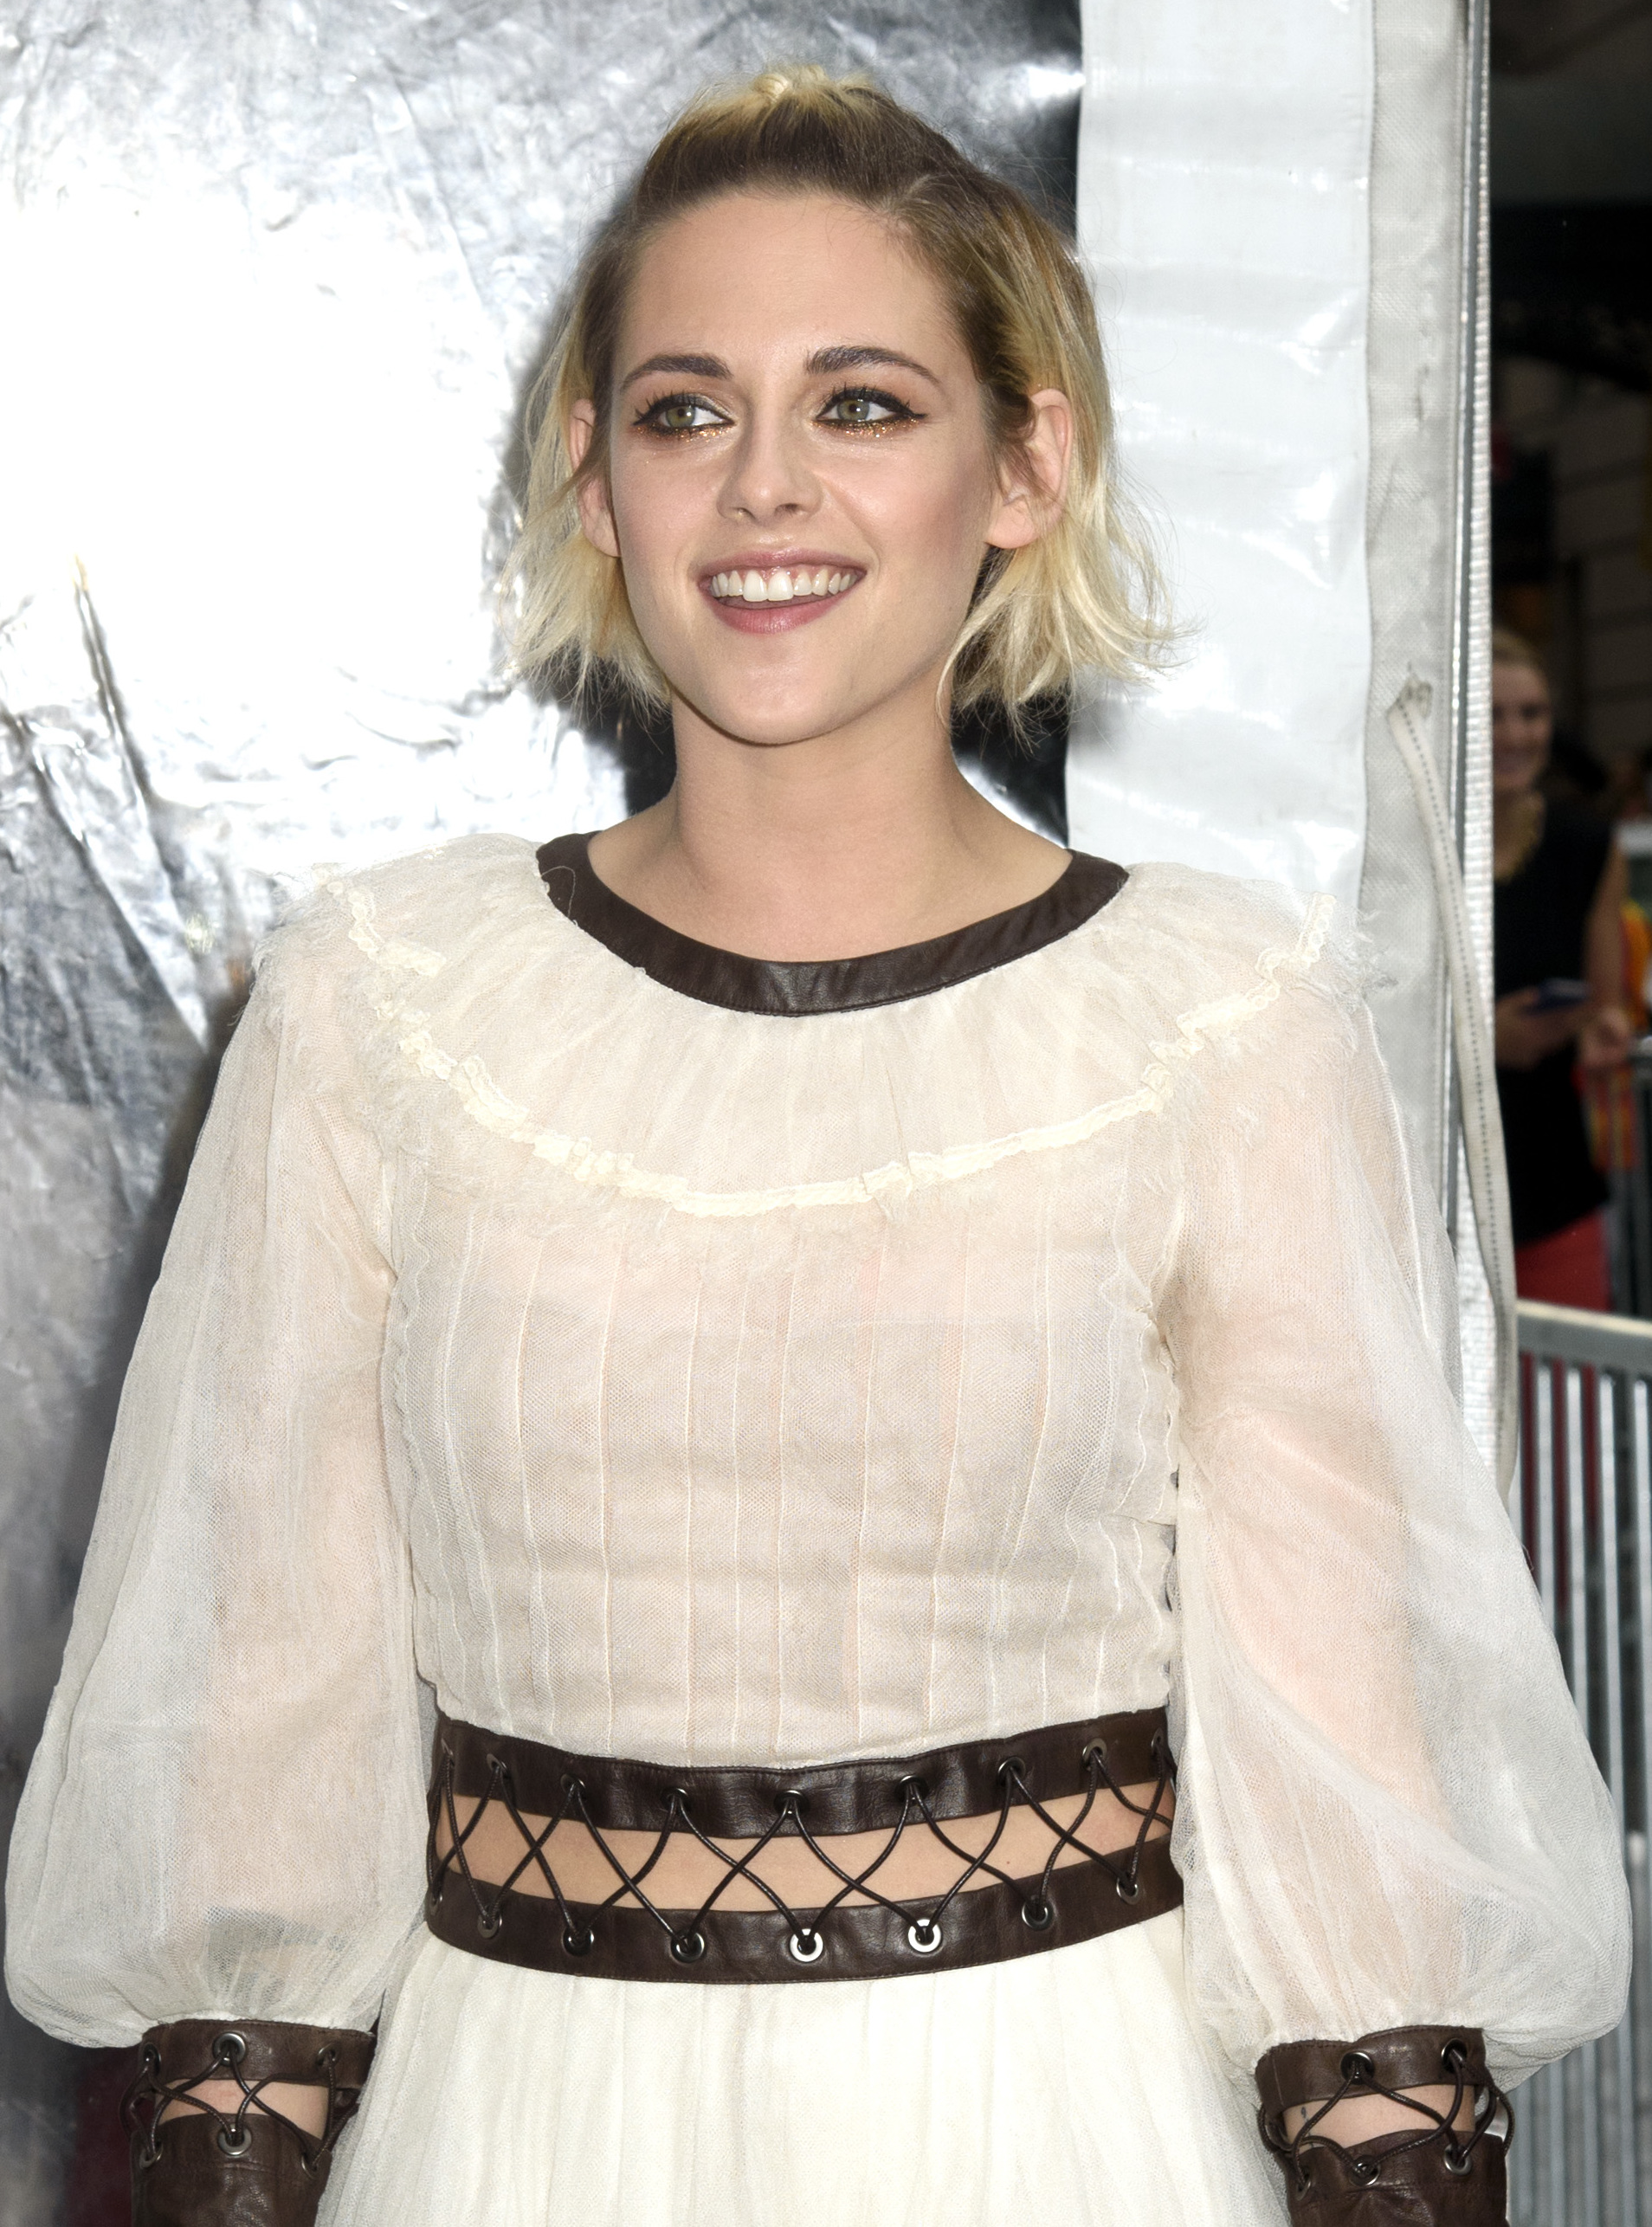 Kristen Stewart Opts Out of a Shirt on the Red Carpet, Pants on the Street